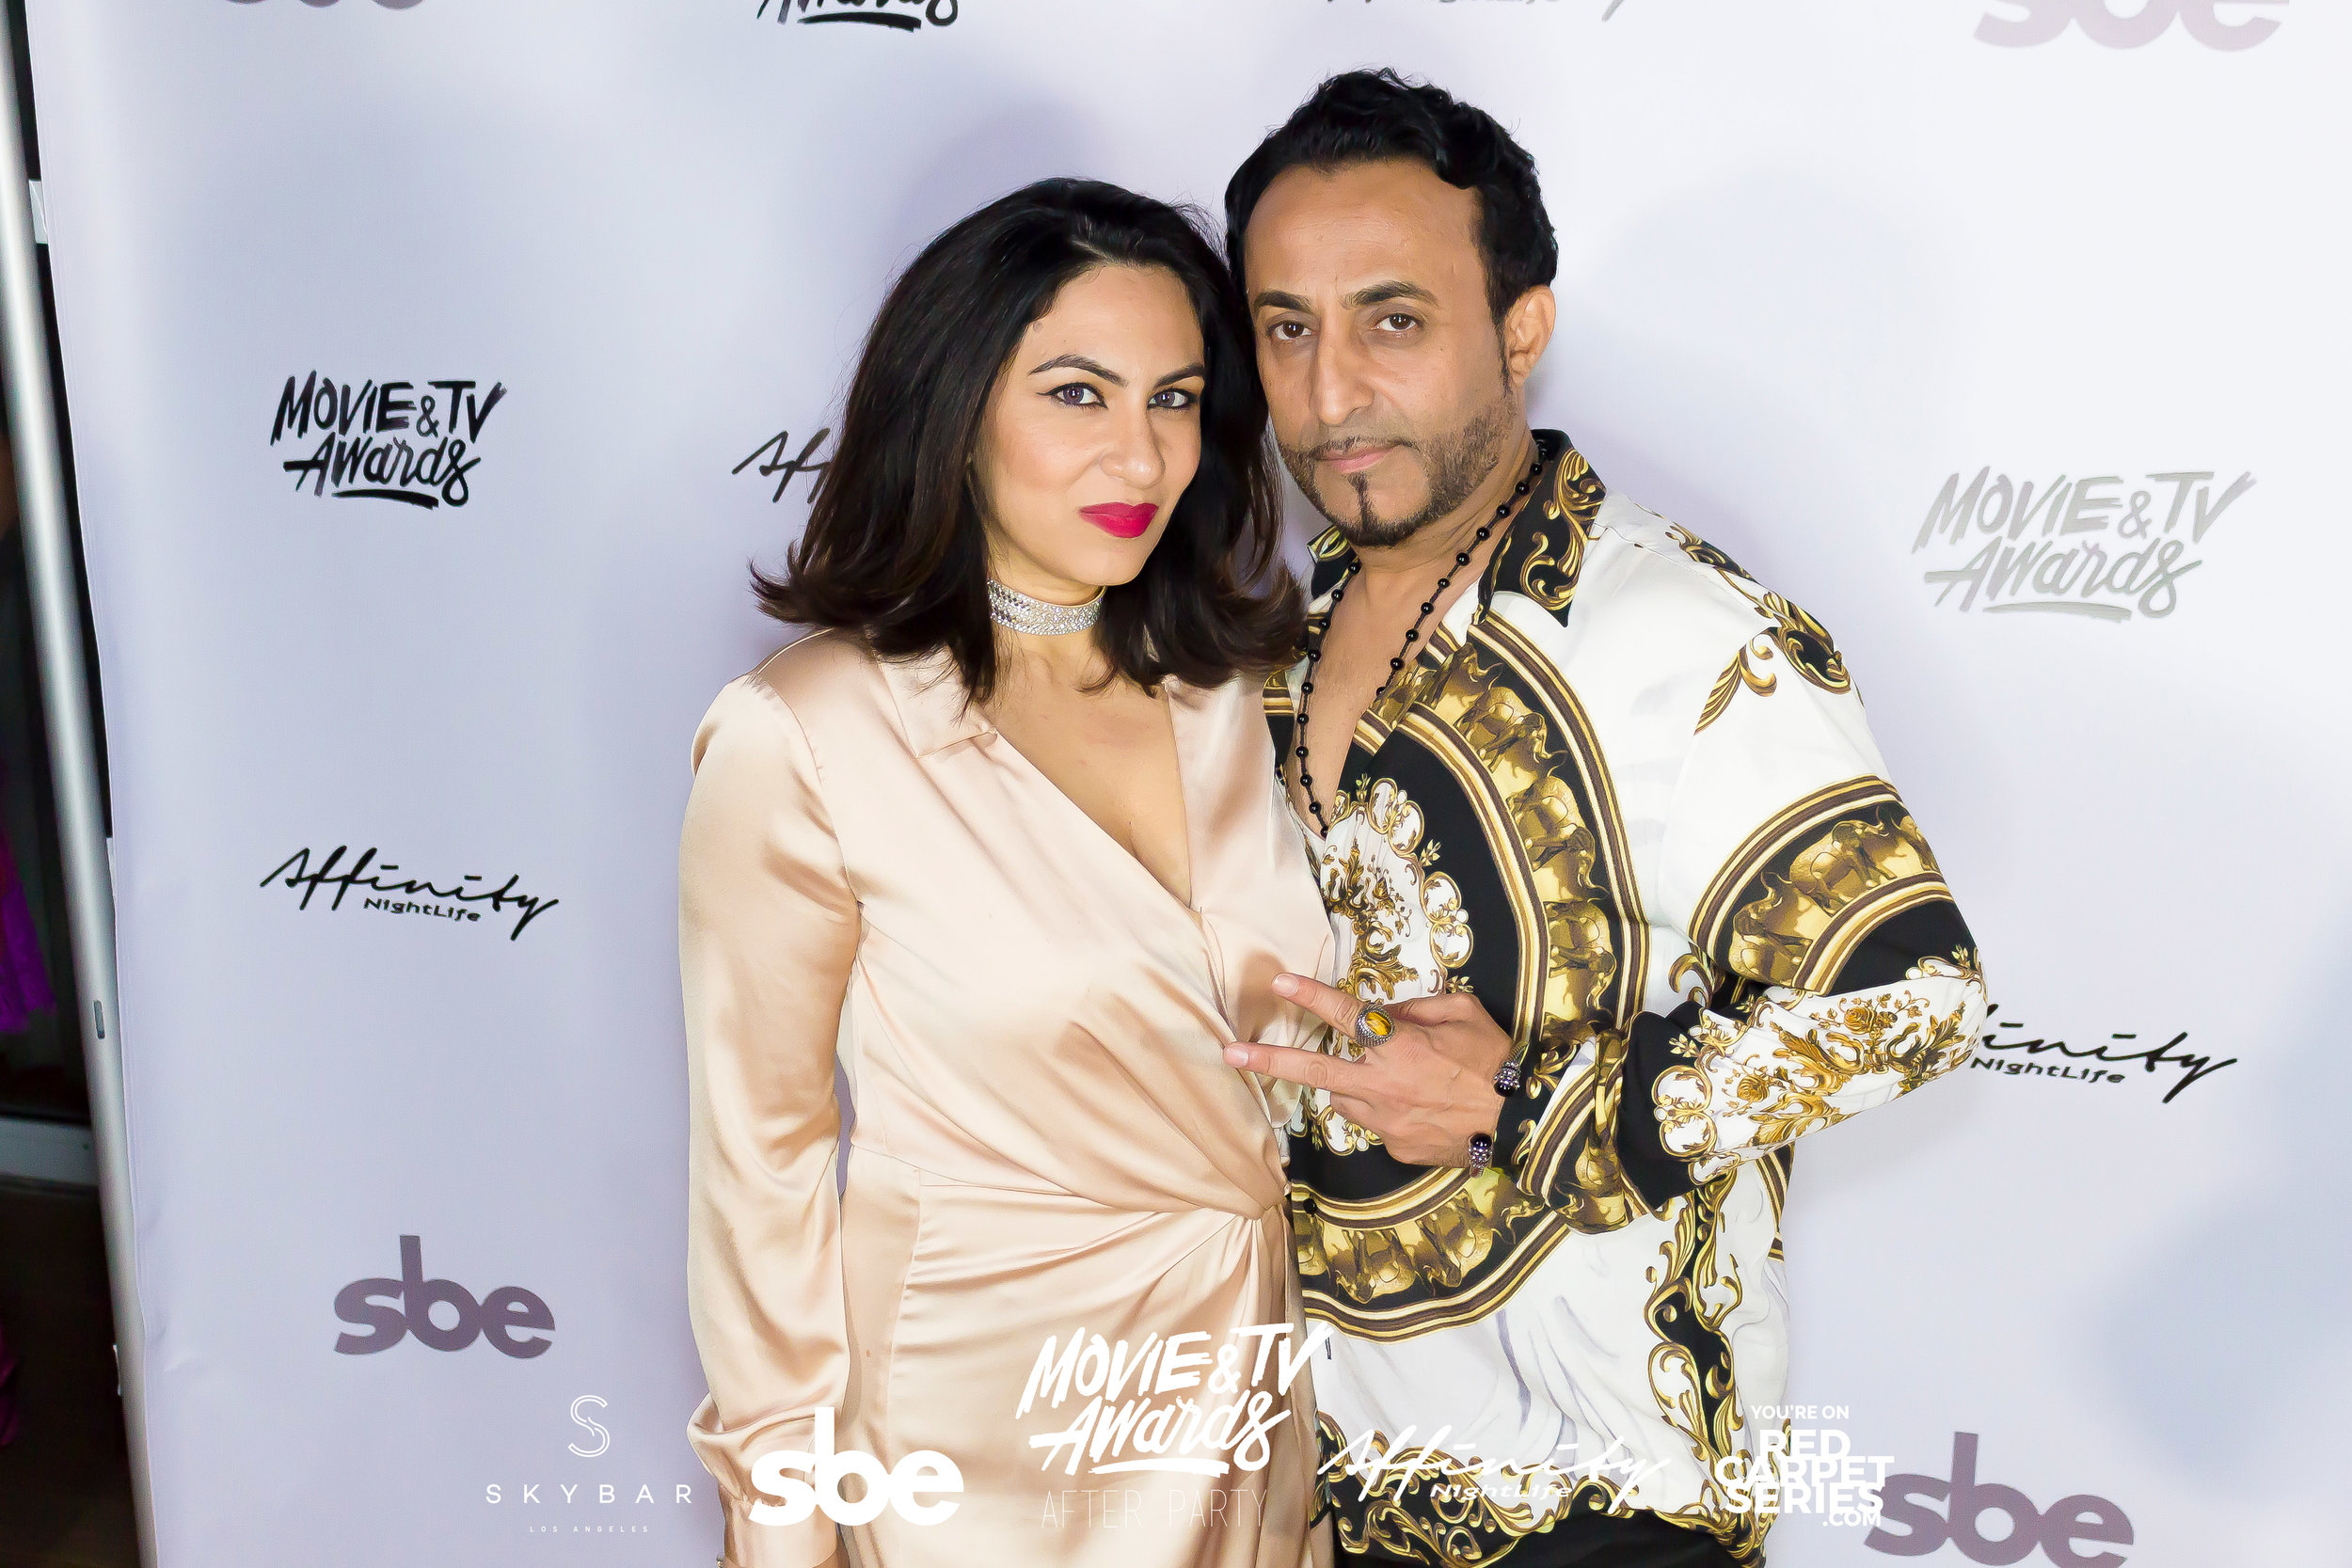 Affinity Nightlife MTV Movie & TV Awards After Party - Skybar at Mondrian - 06-15-19 - Vol. 2_104.jpg